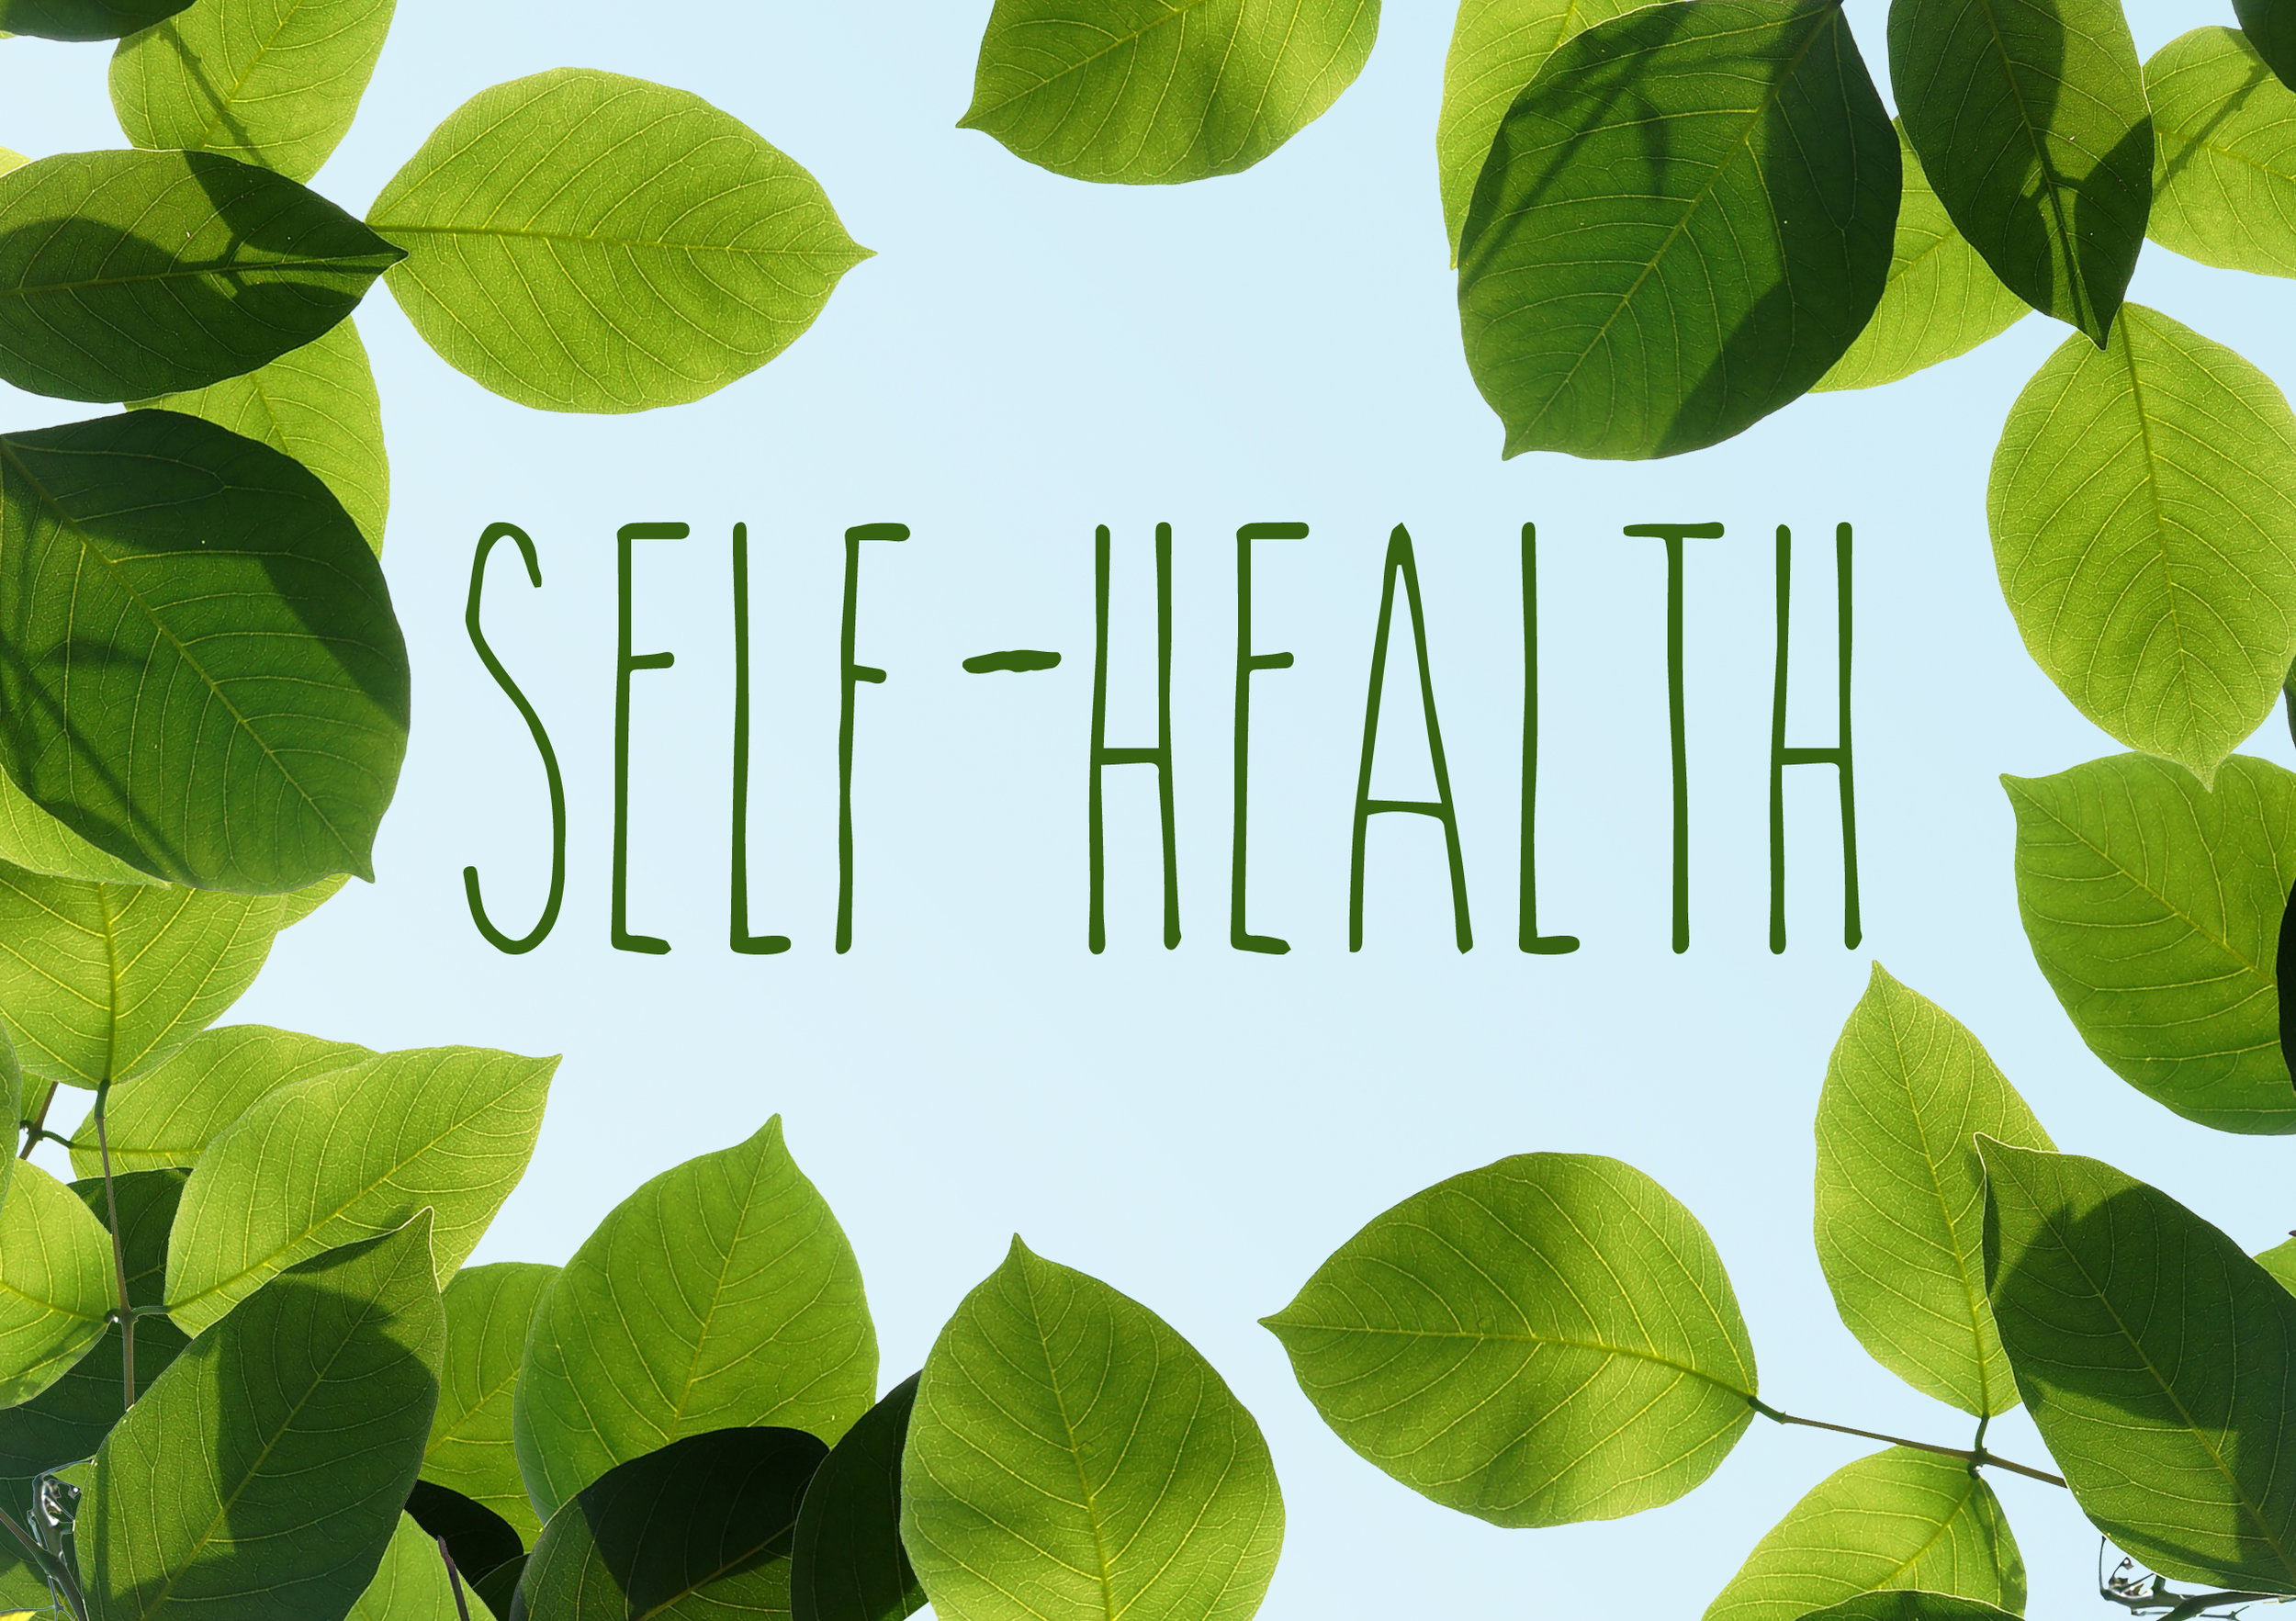 Self Health - Self-Health is a student mental health podcast . Students on the show share their personal struggles with mental health to inspire others and combat mental illness stigma on campus and beyond. The conversation starts here and now.